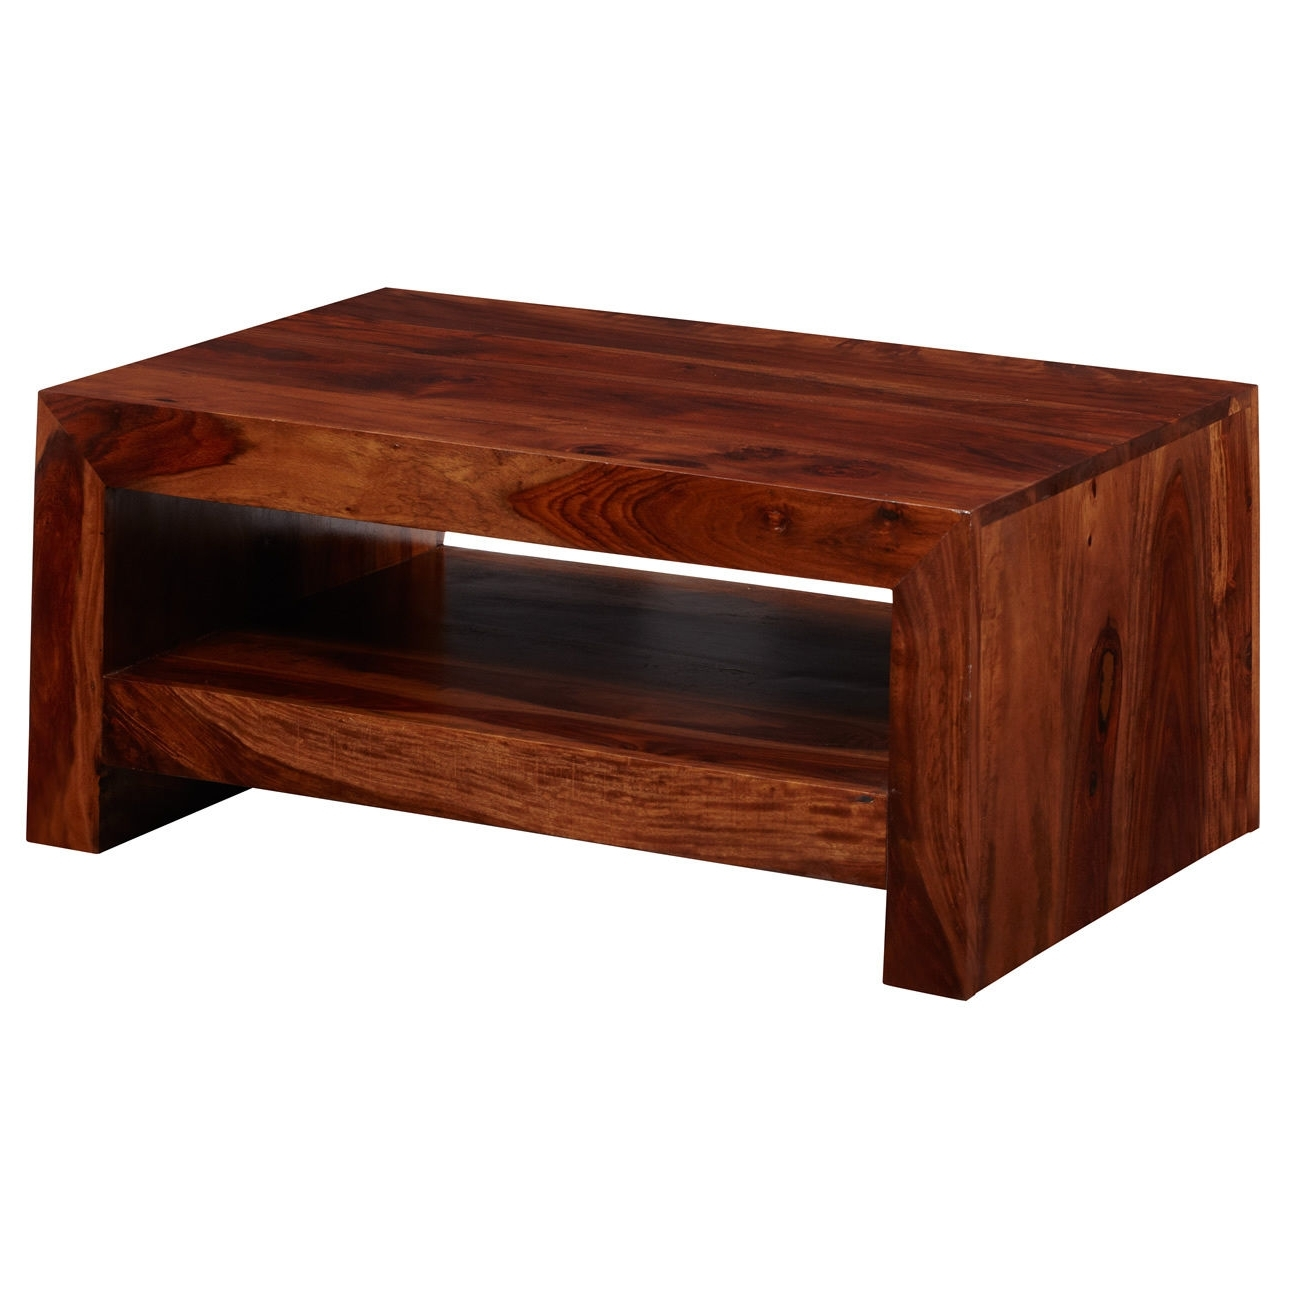 2018 Rectangular Barbox Coffee Tables For Wooden Coffee Tables Ebay Chest Coffee Table With Lift Top Plans (View 3 of 20)